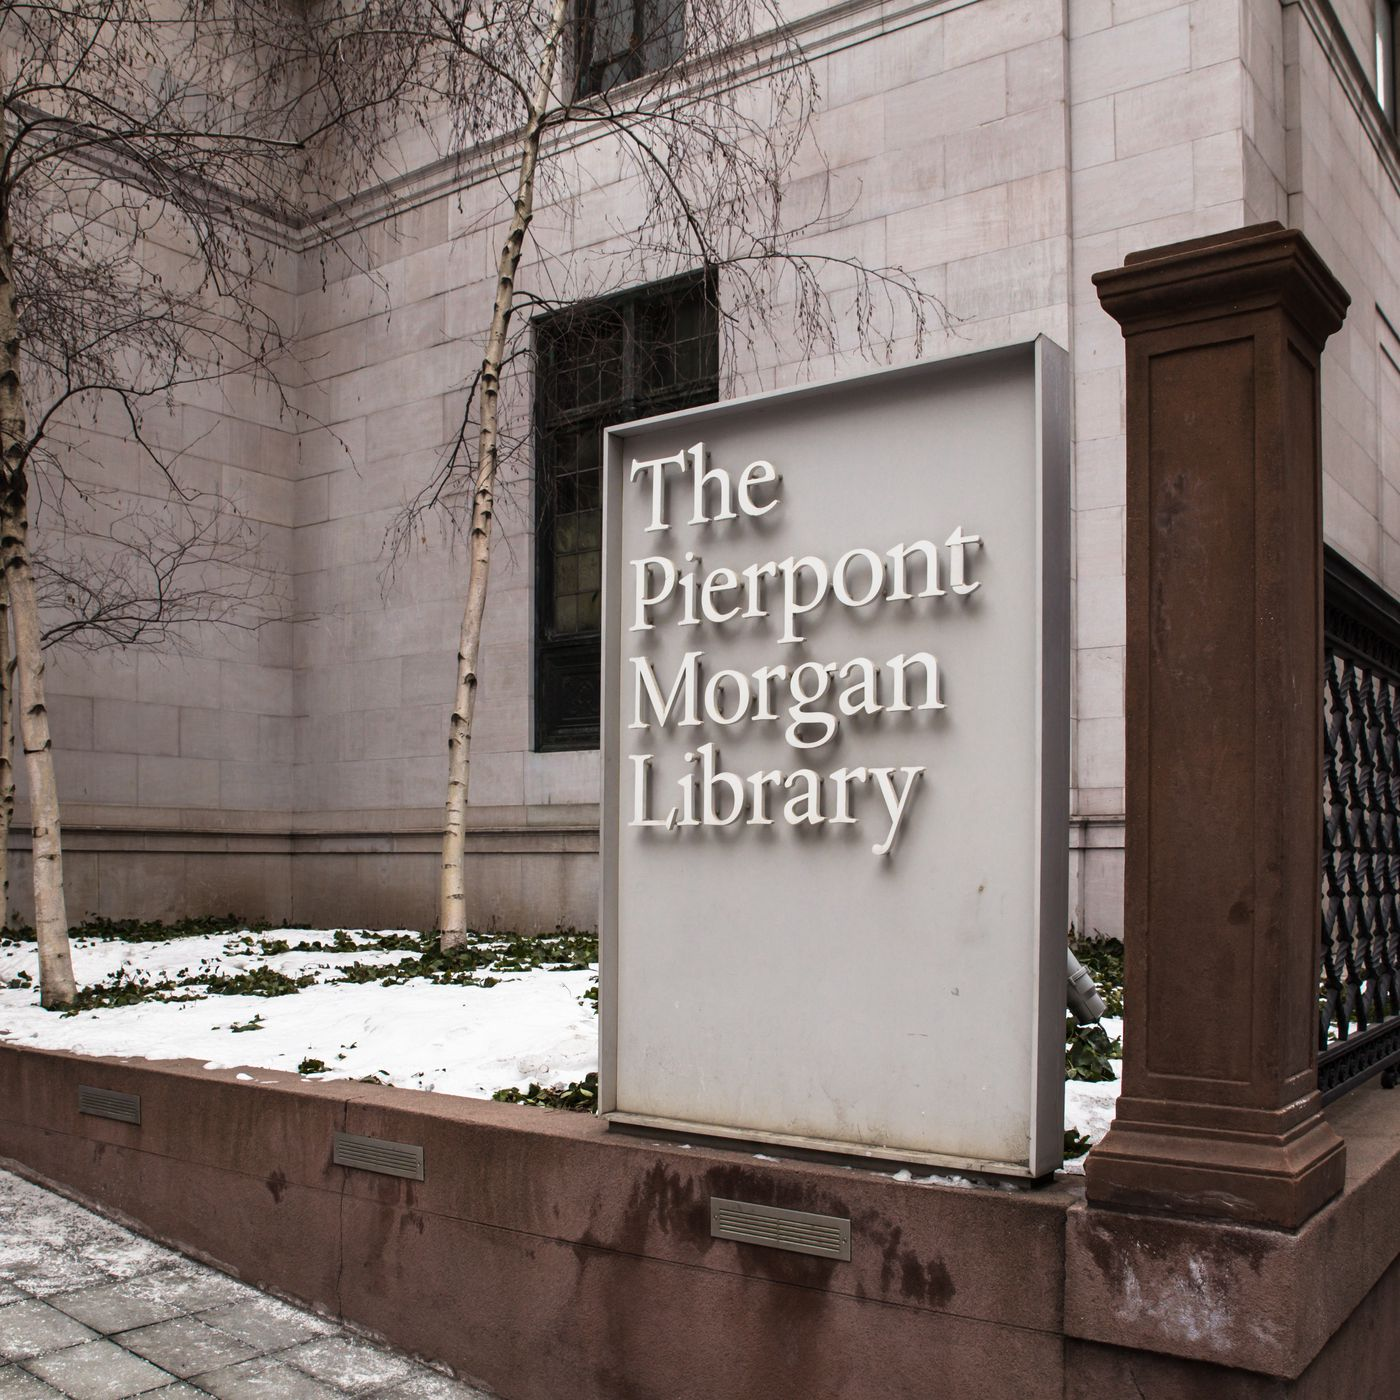 The Morgan Library's Charles McKim-designed landmark building to get a facelift